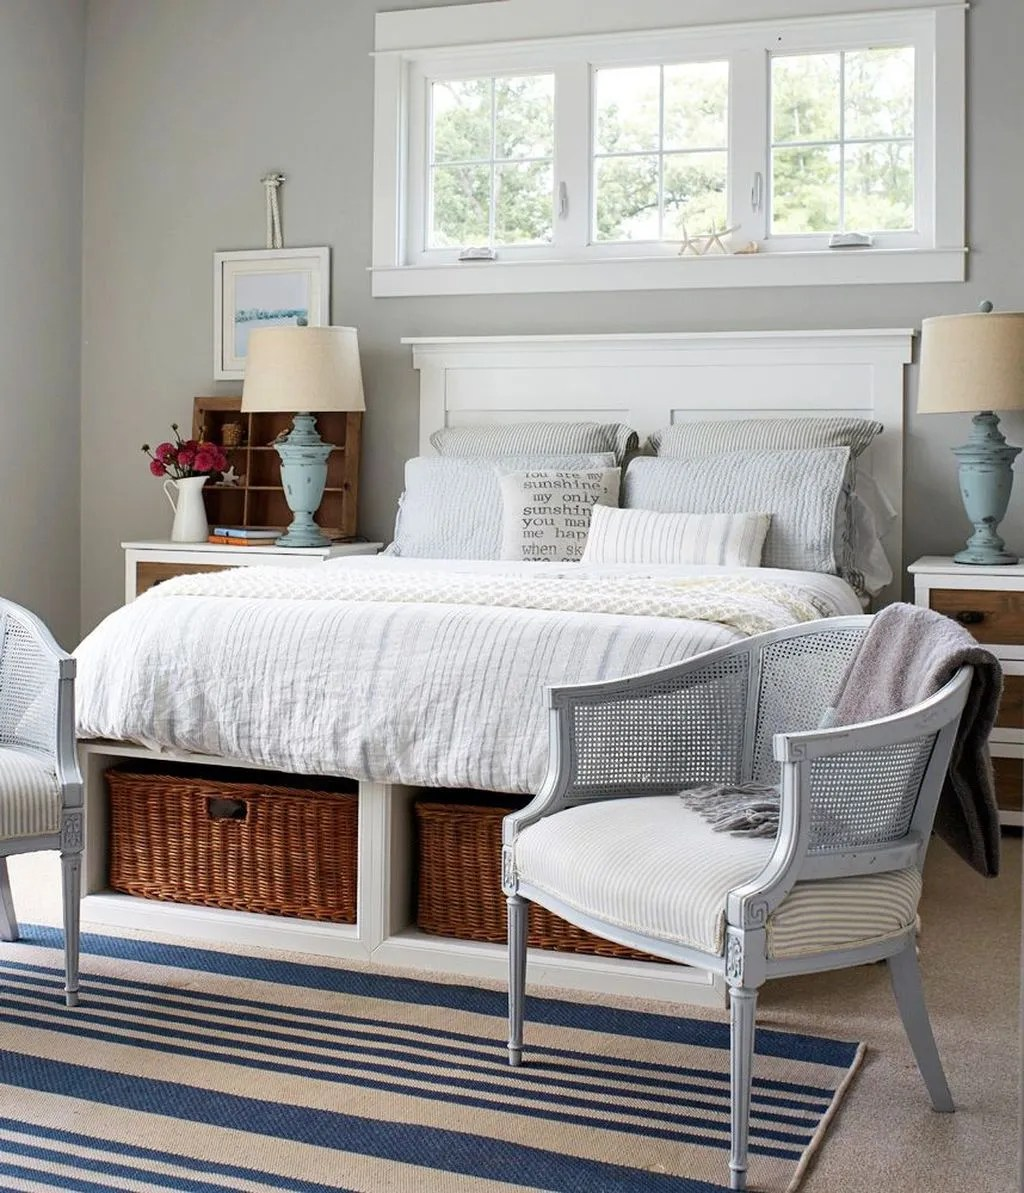 The Best Lake House Bedroom Design And Decor Ideas 09